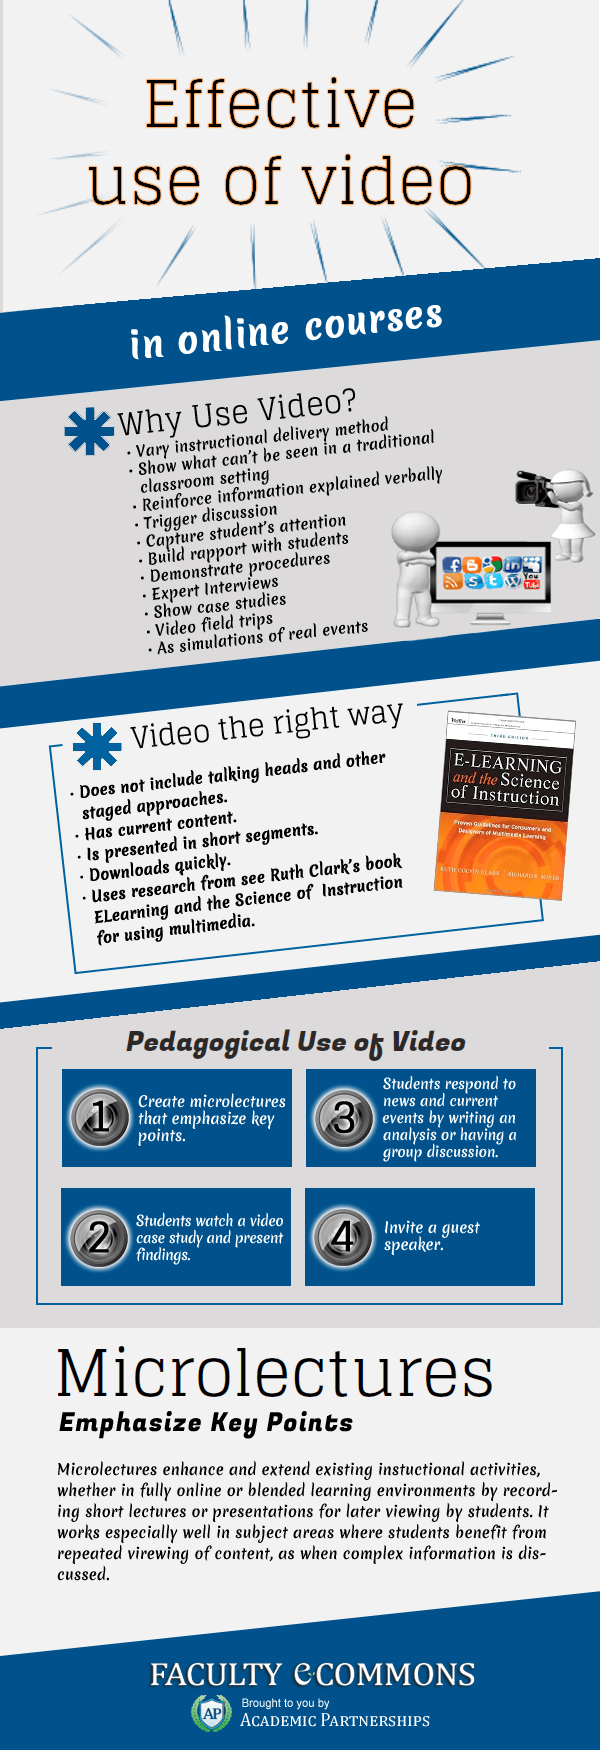 The-Effective-Use-of-Video-in-Online-Courses-Infographic